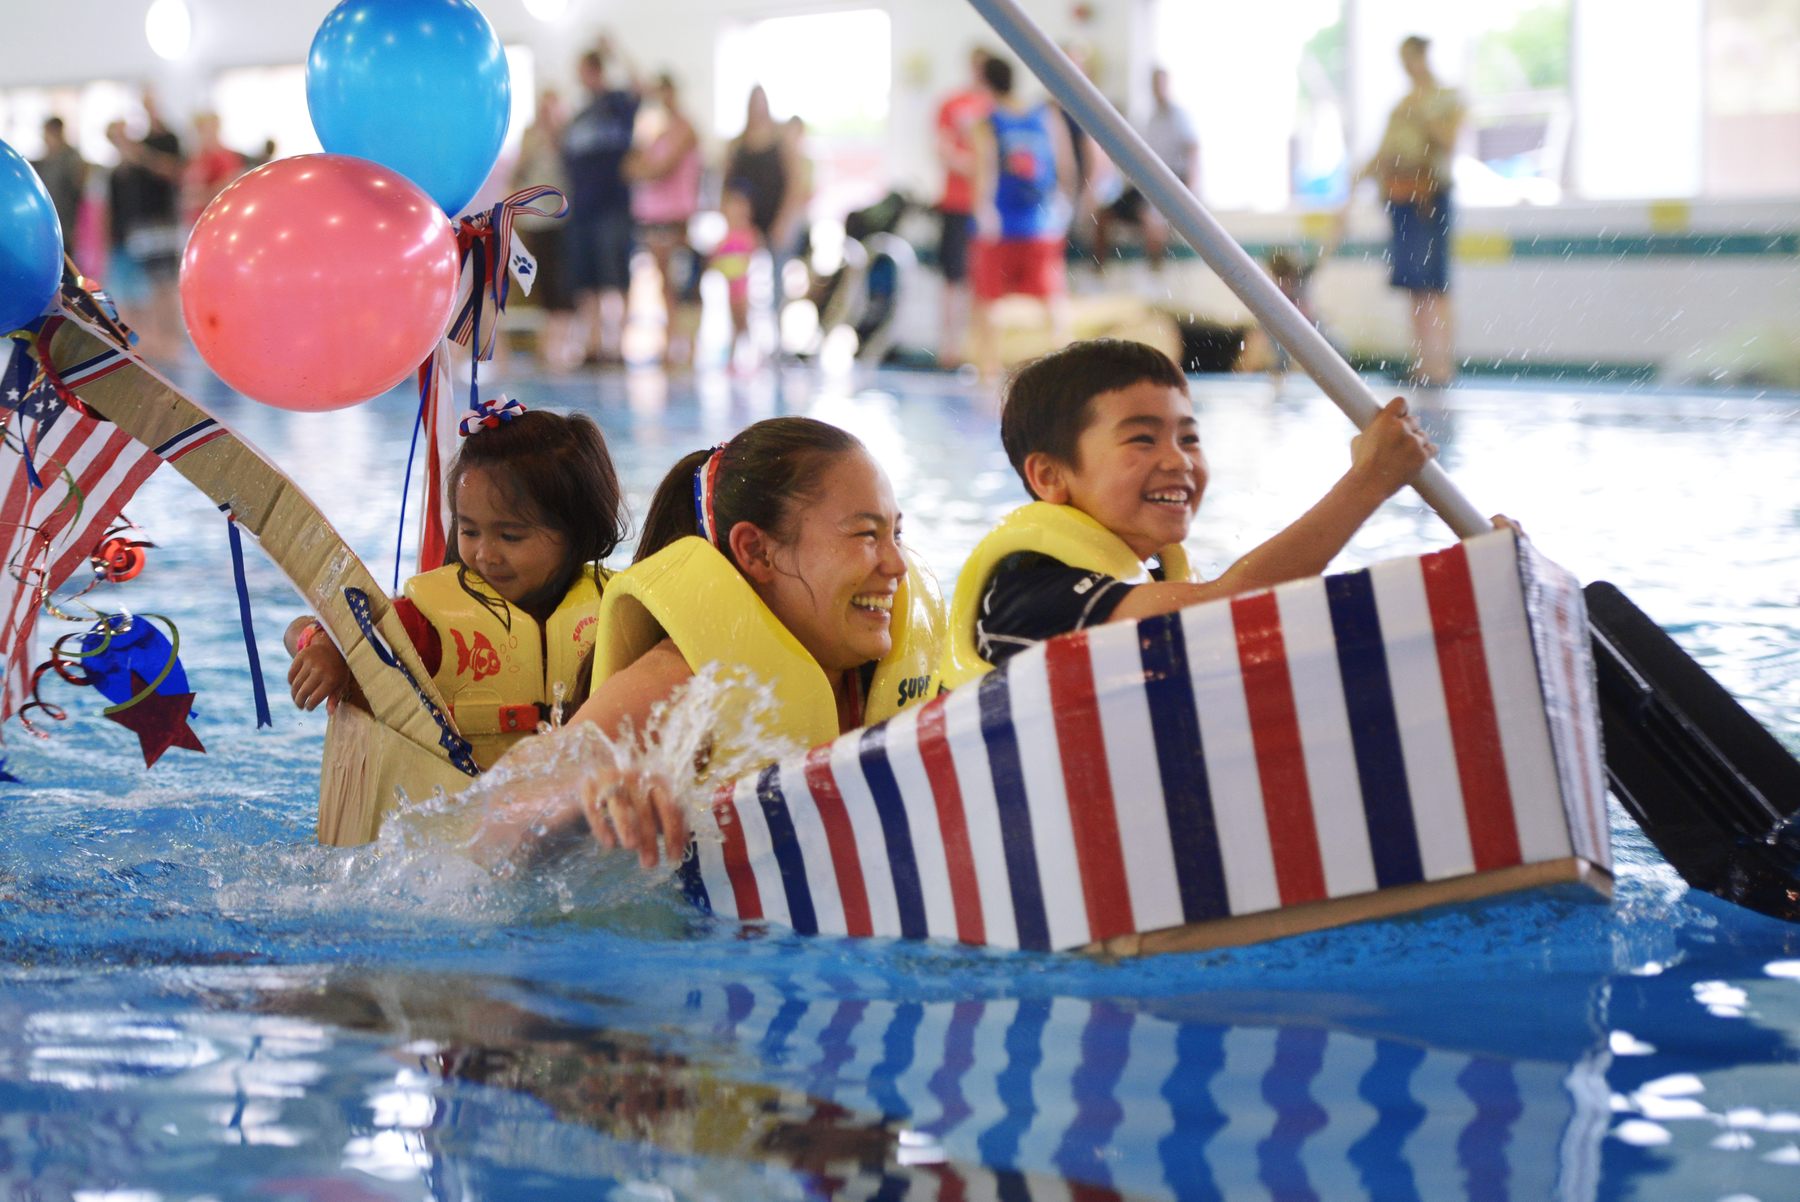 A family races to victory in the Leaky Kon Tiki race during Celebrate America at Yokota Air Base, Japan, July 2, 2015. The race, hosted by the 374th Force Support Squadron, was one of many events held during Celebrate America. (U.S. Air Force photo by Airman 1st Class Delano Scott/Released)